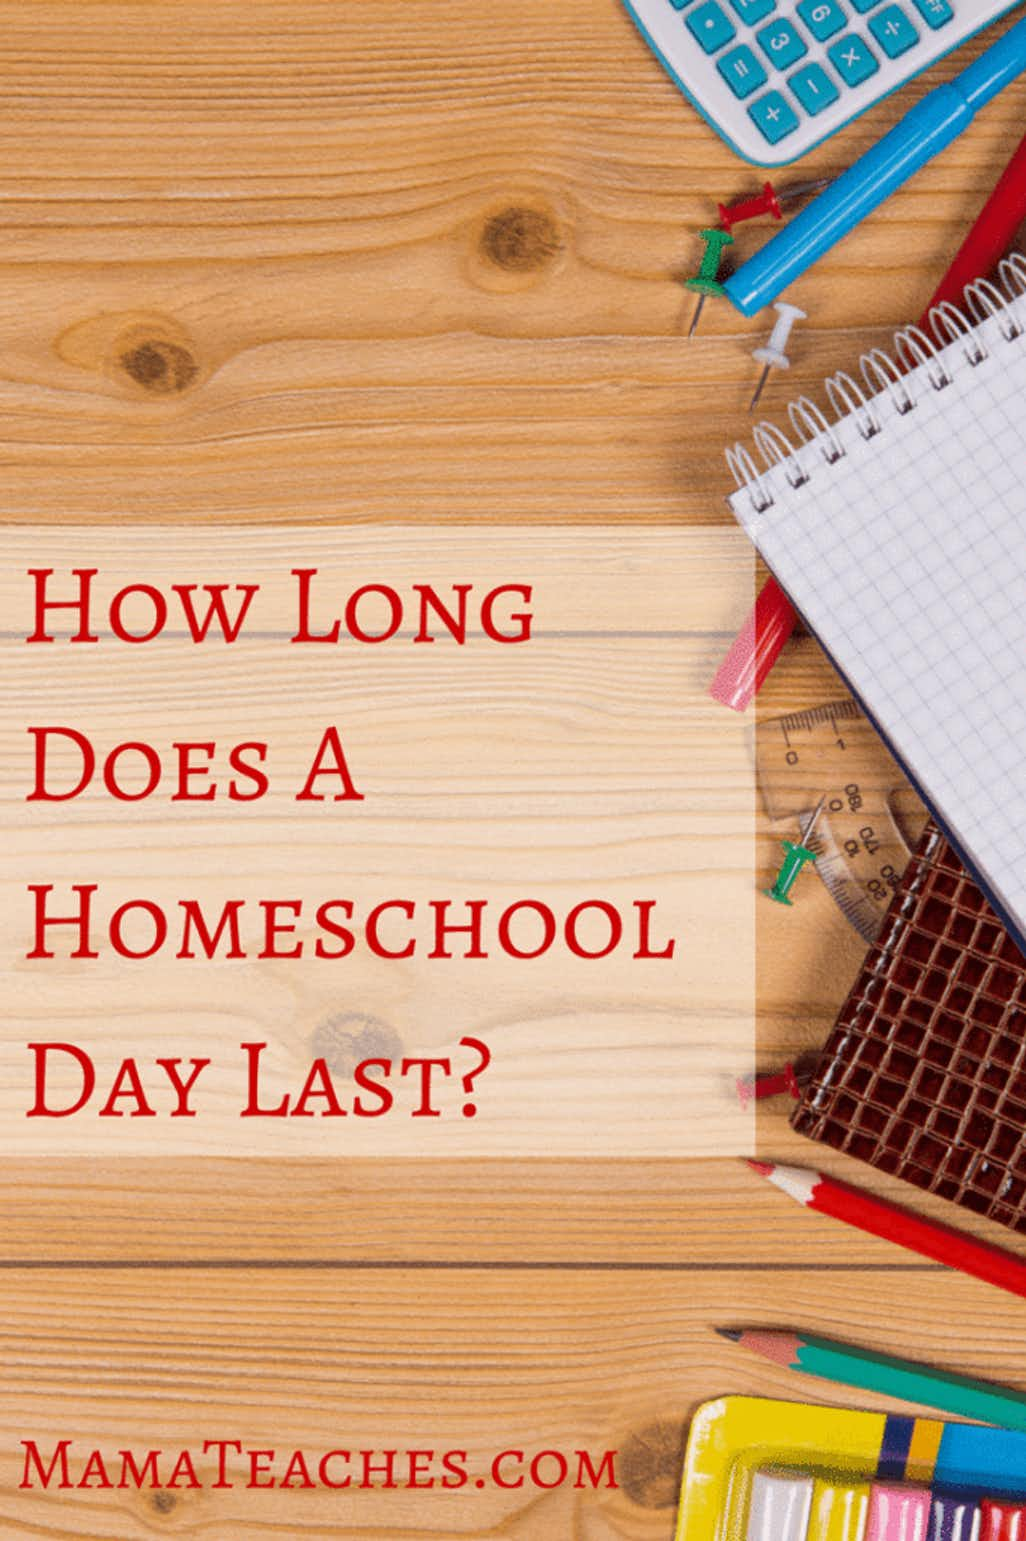 How Long Does a Homeschool Day Last Post